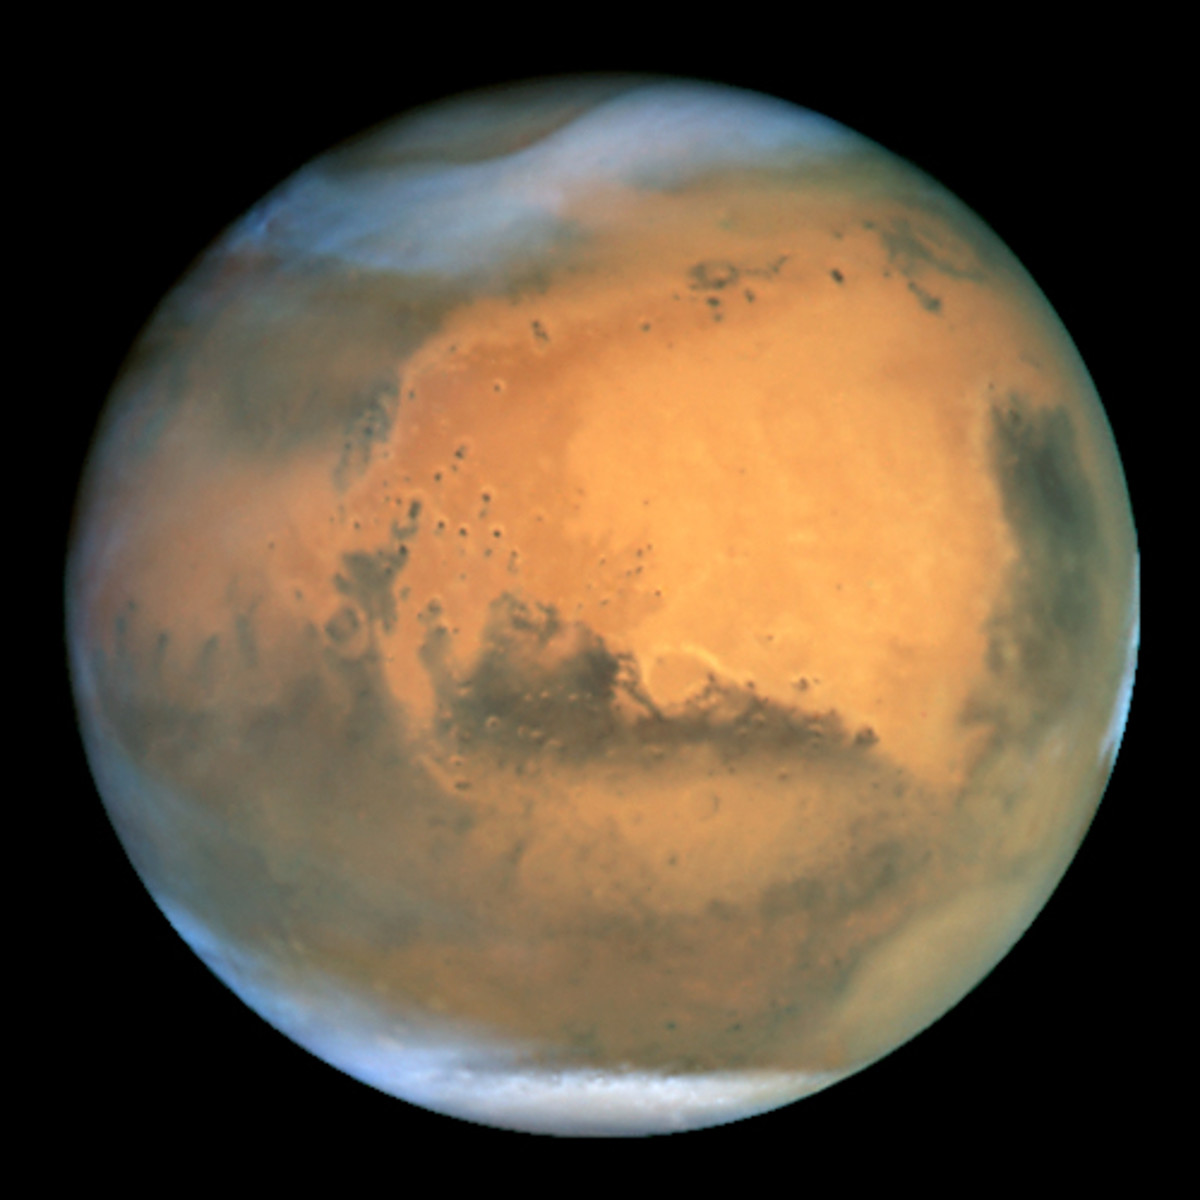 The Planet Mars as seen by the Hubble Space Telescope on June 26, 2001. Objects as small as 10 miles across can be seen.